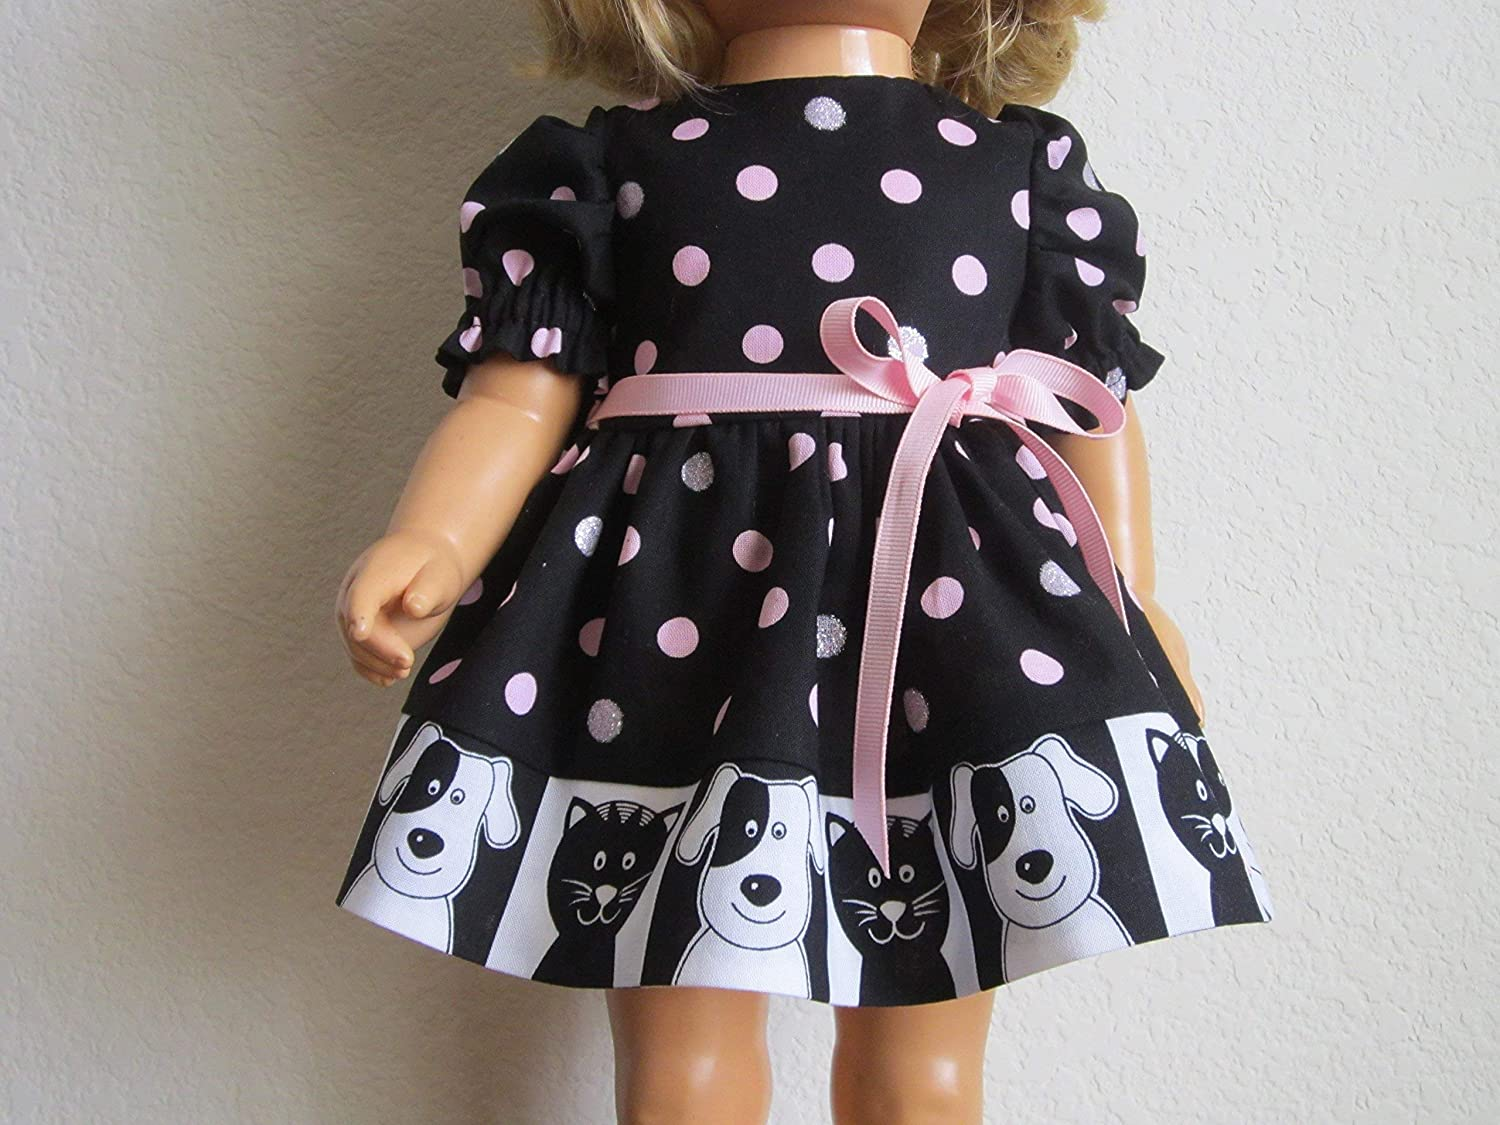 Dog and Cat 'Mugshot' Dress features Silver Glitter Dots fits Chatty Cathy